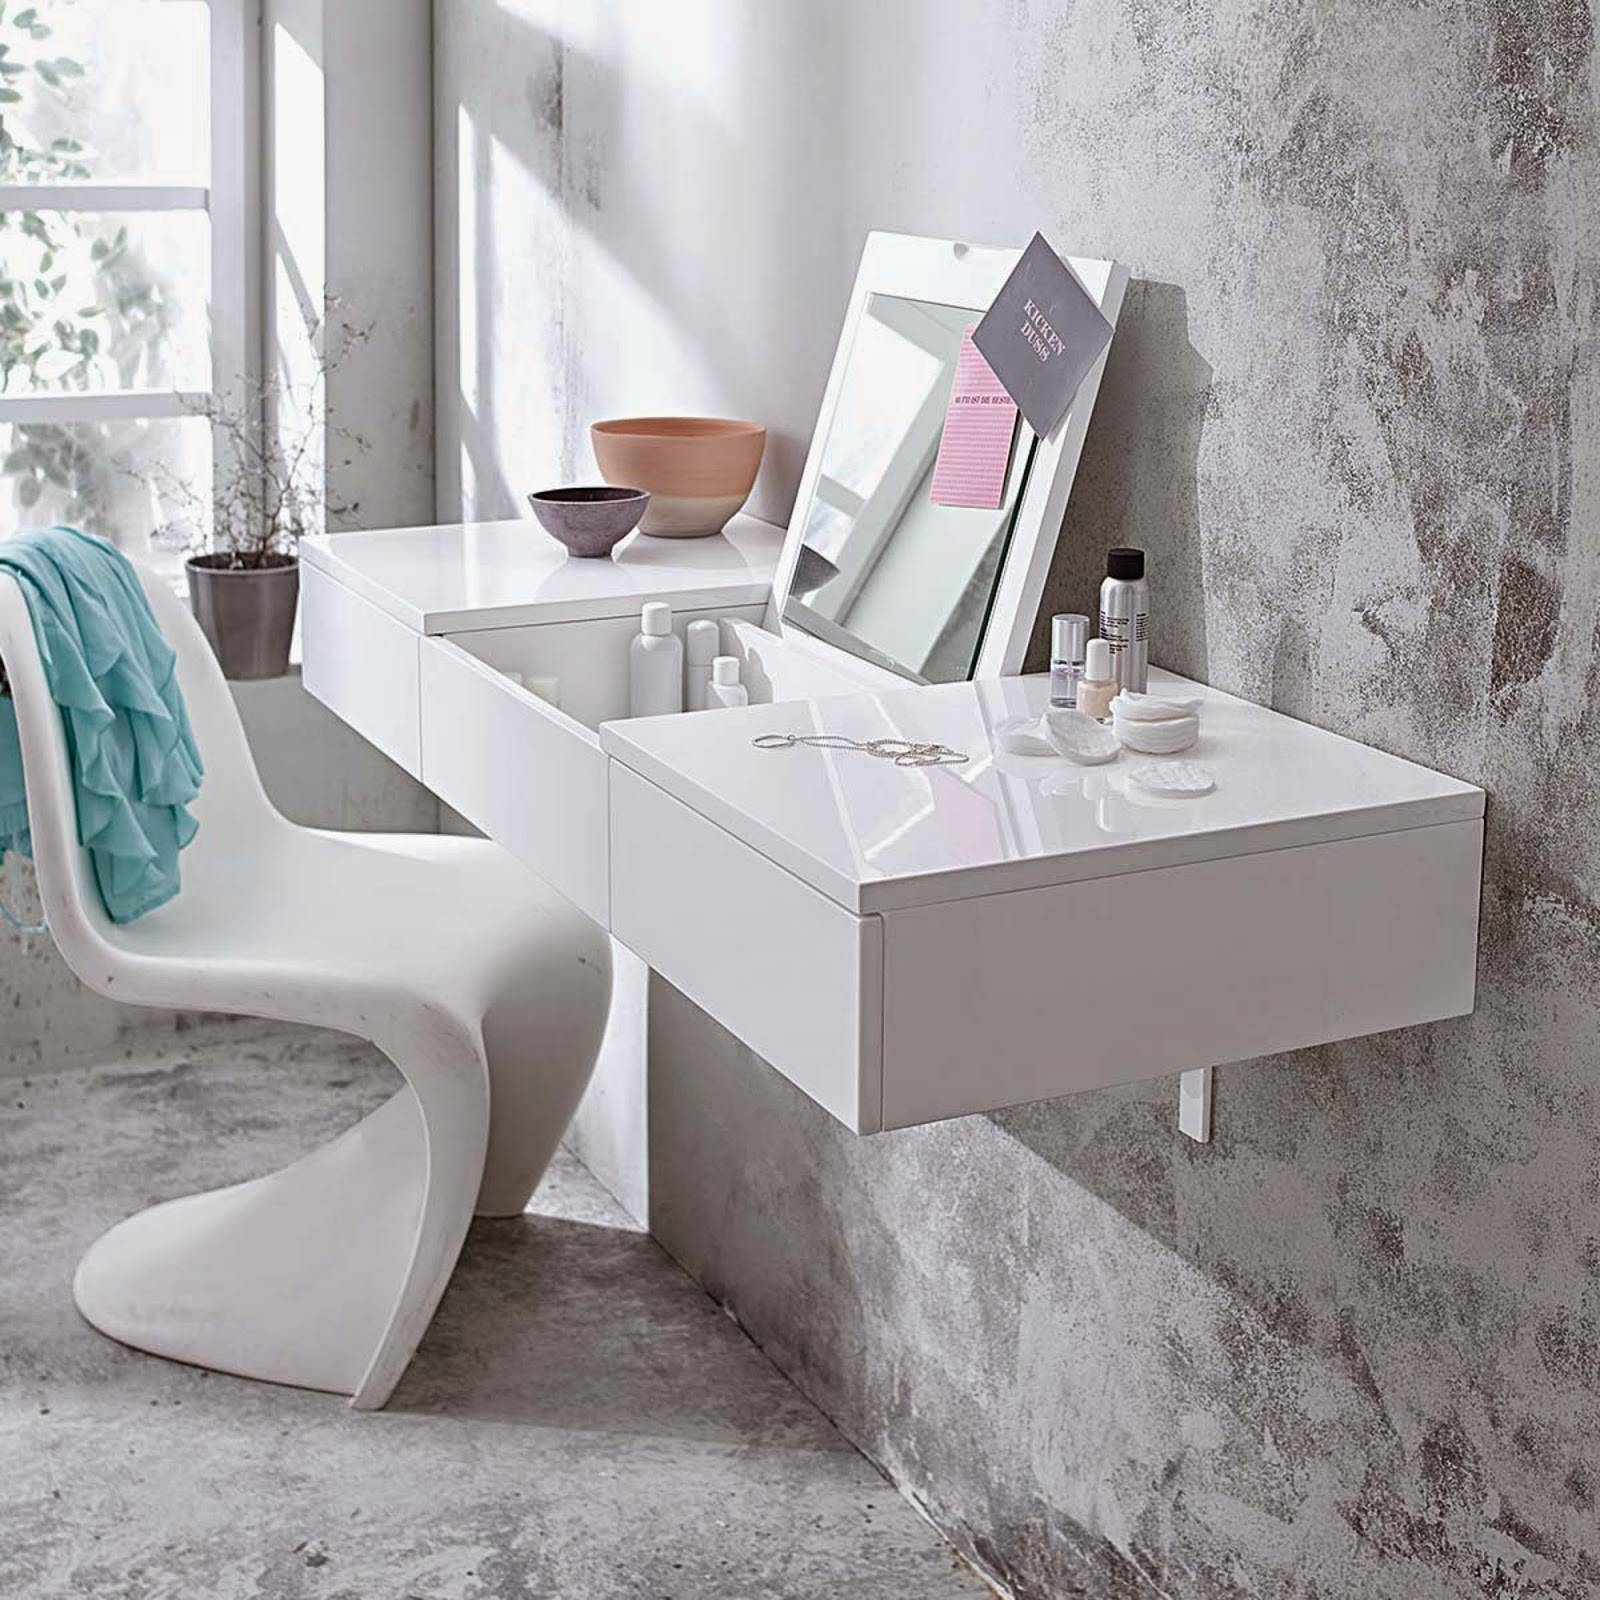 Full Catalog Of Dressing Table Designs, Ideas And Styles regarding Decorative Dressing Table Mirrors (Image 14 of 25)